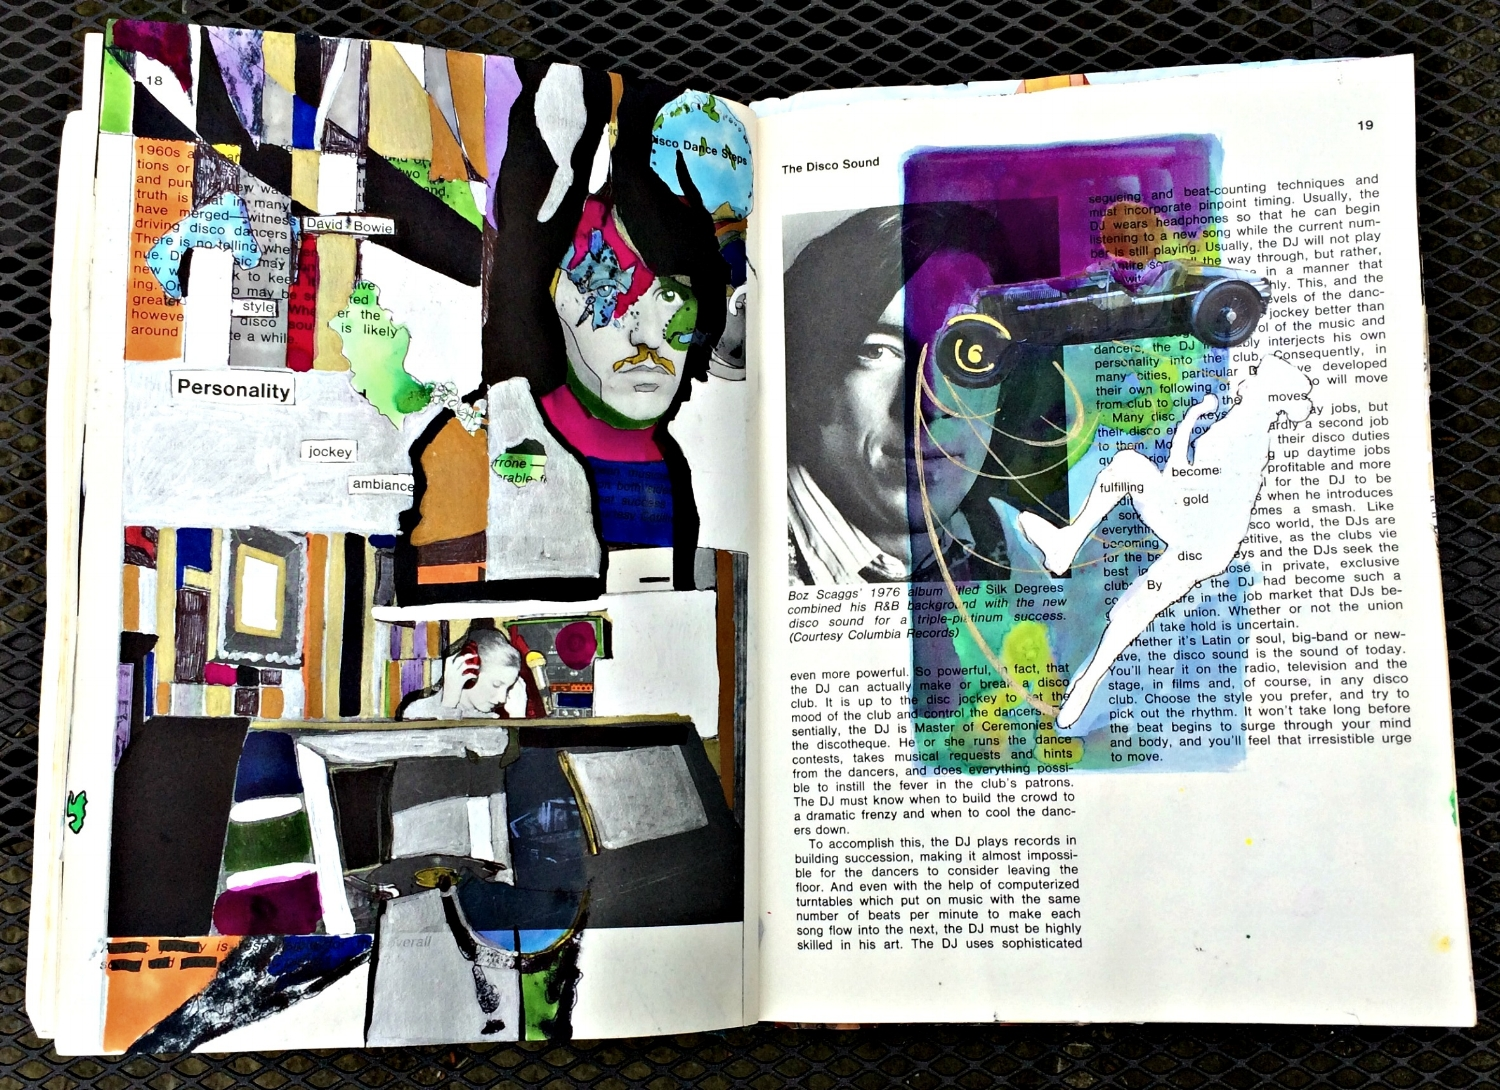 Altered Book (Disco Dance Moves): abstracts, whiteouts, etc